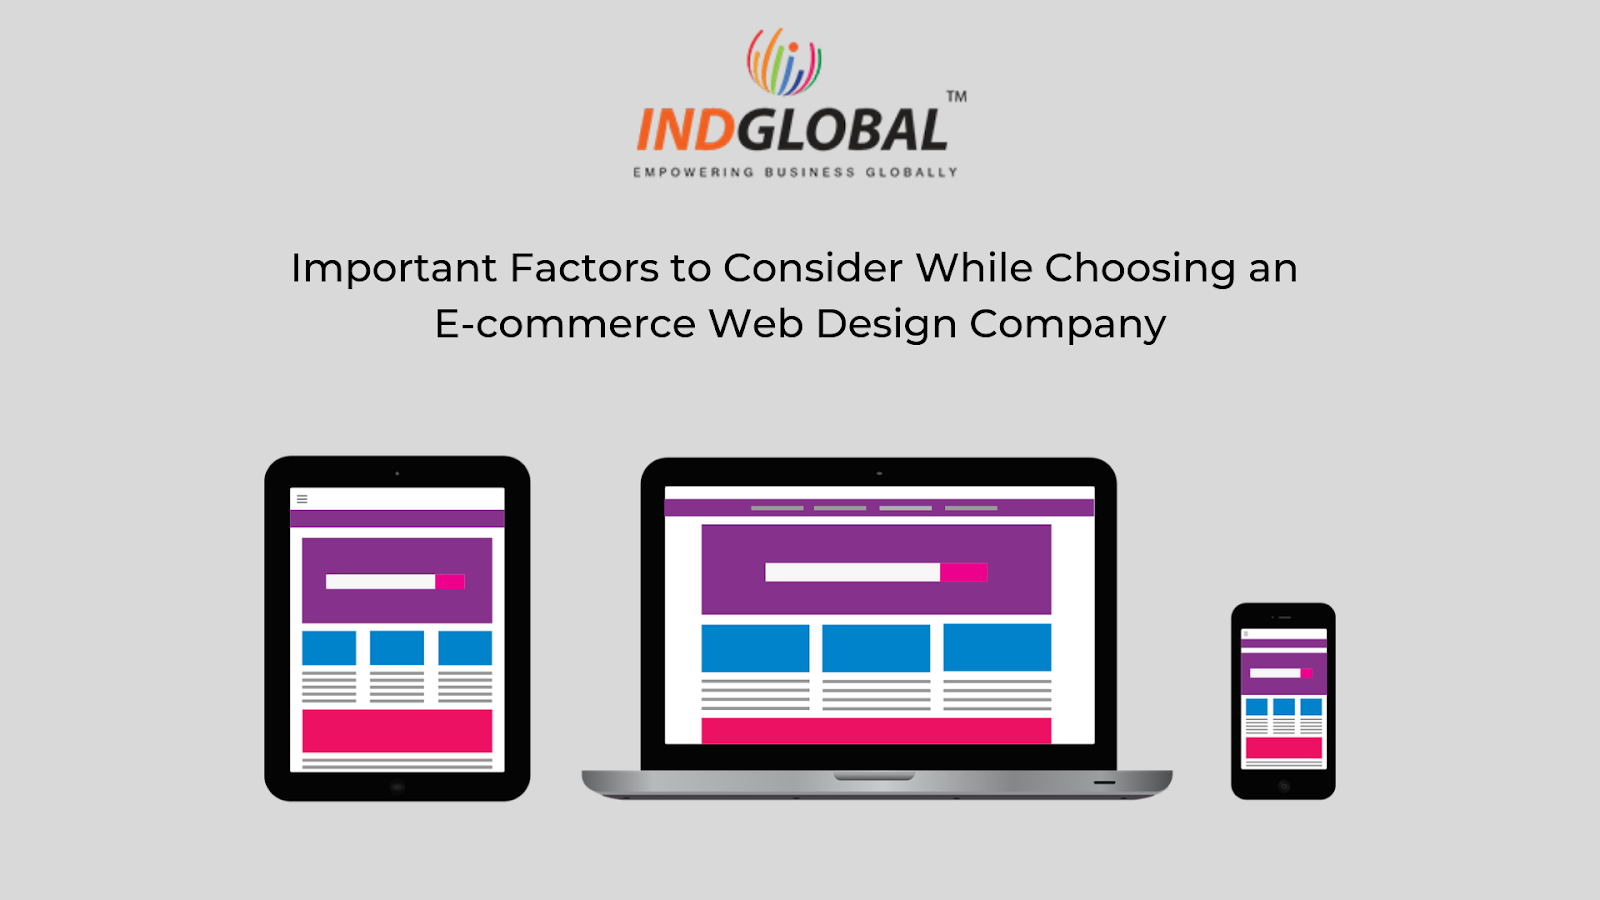 Important Factors to Consider While Choosing an E-commerce Web Design Company